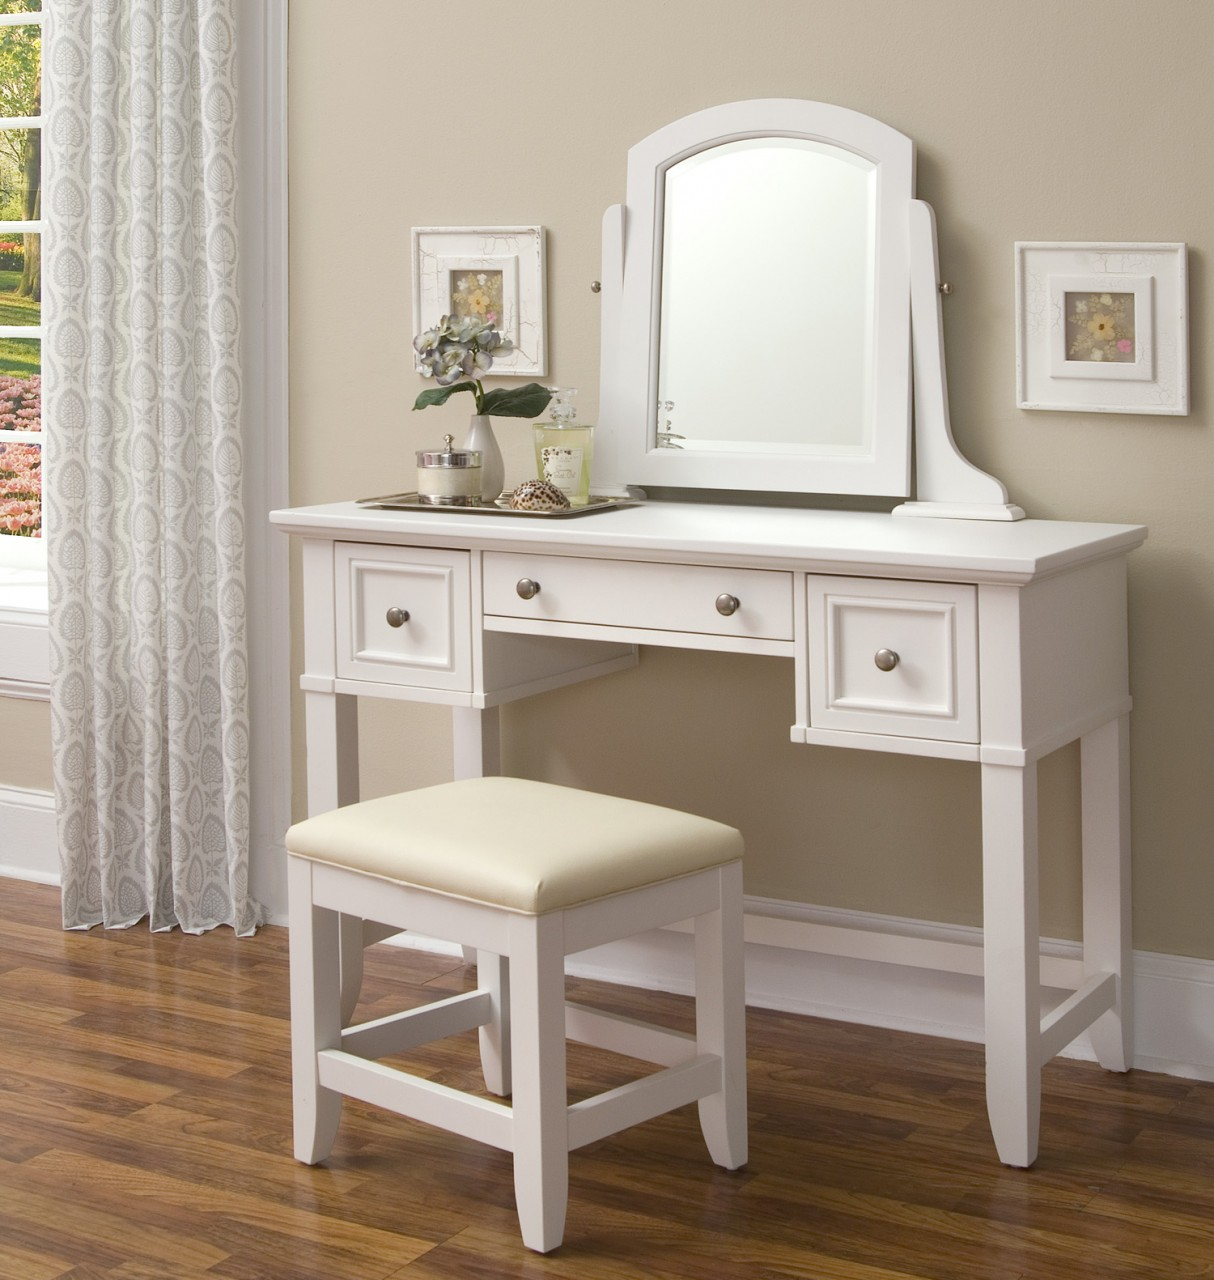 Lovable White Vanity Design With Storage And Mirror And White Stools Idea  On Wooden Floor